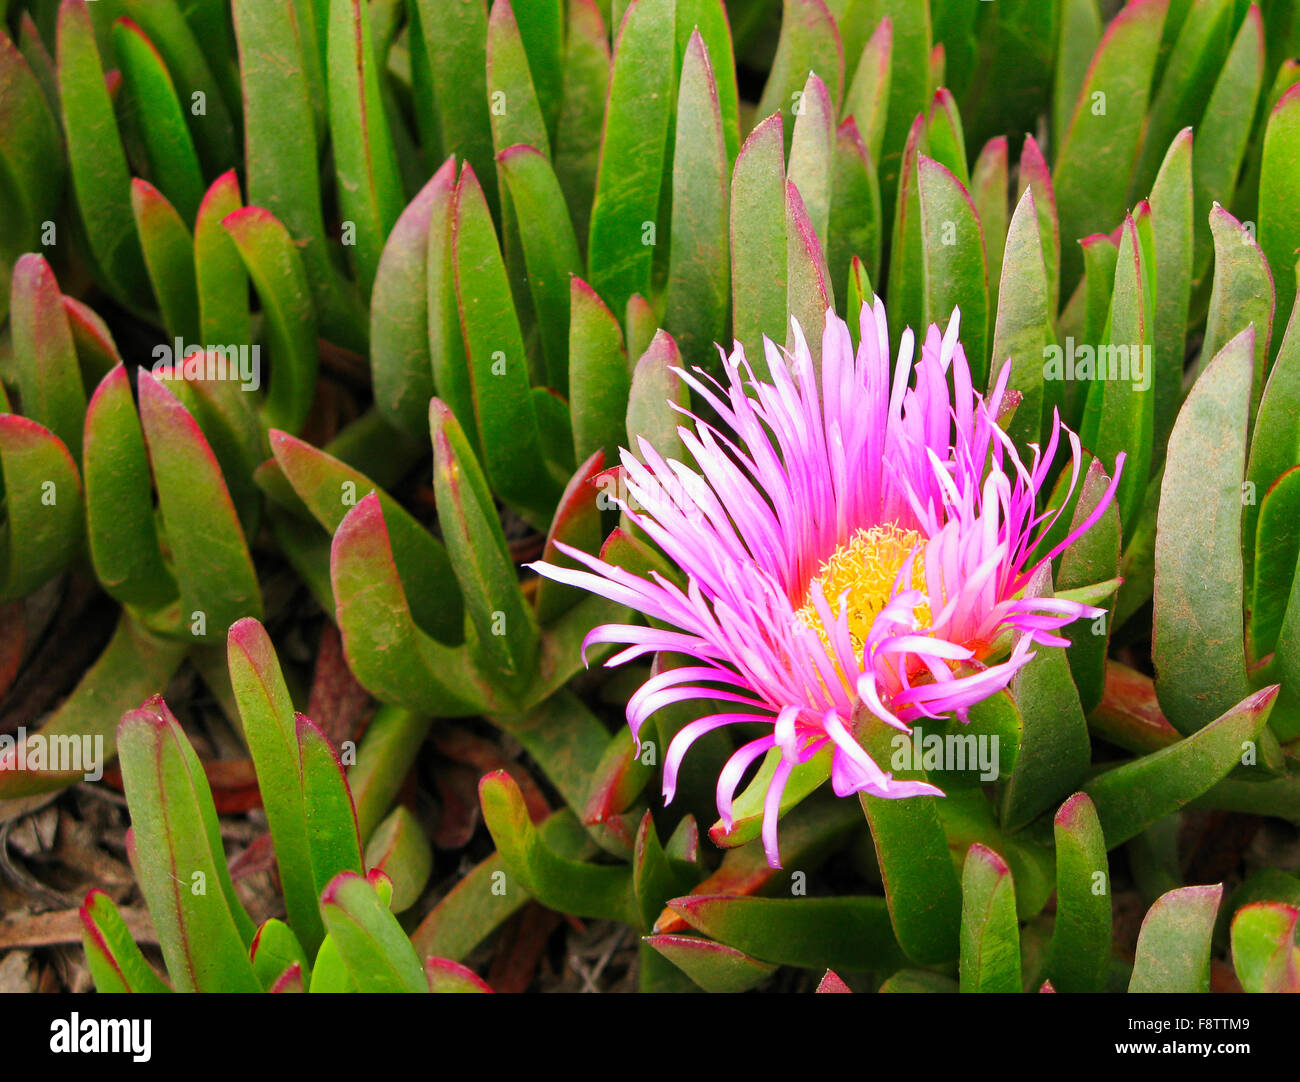 Pink Yellow Colored Flower Of Green Succulent Plant Growing On The